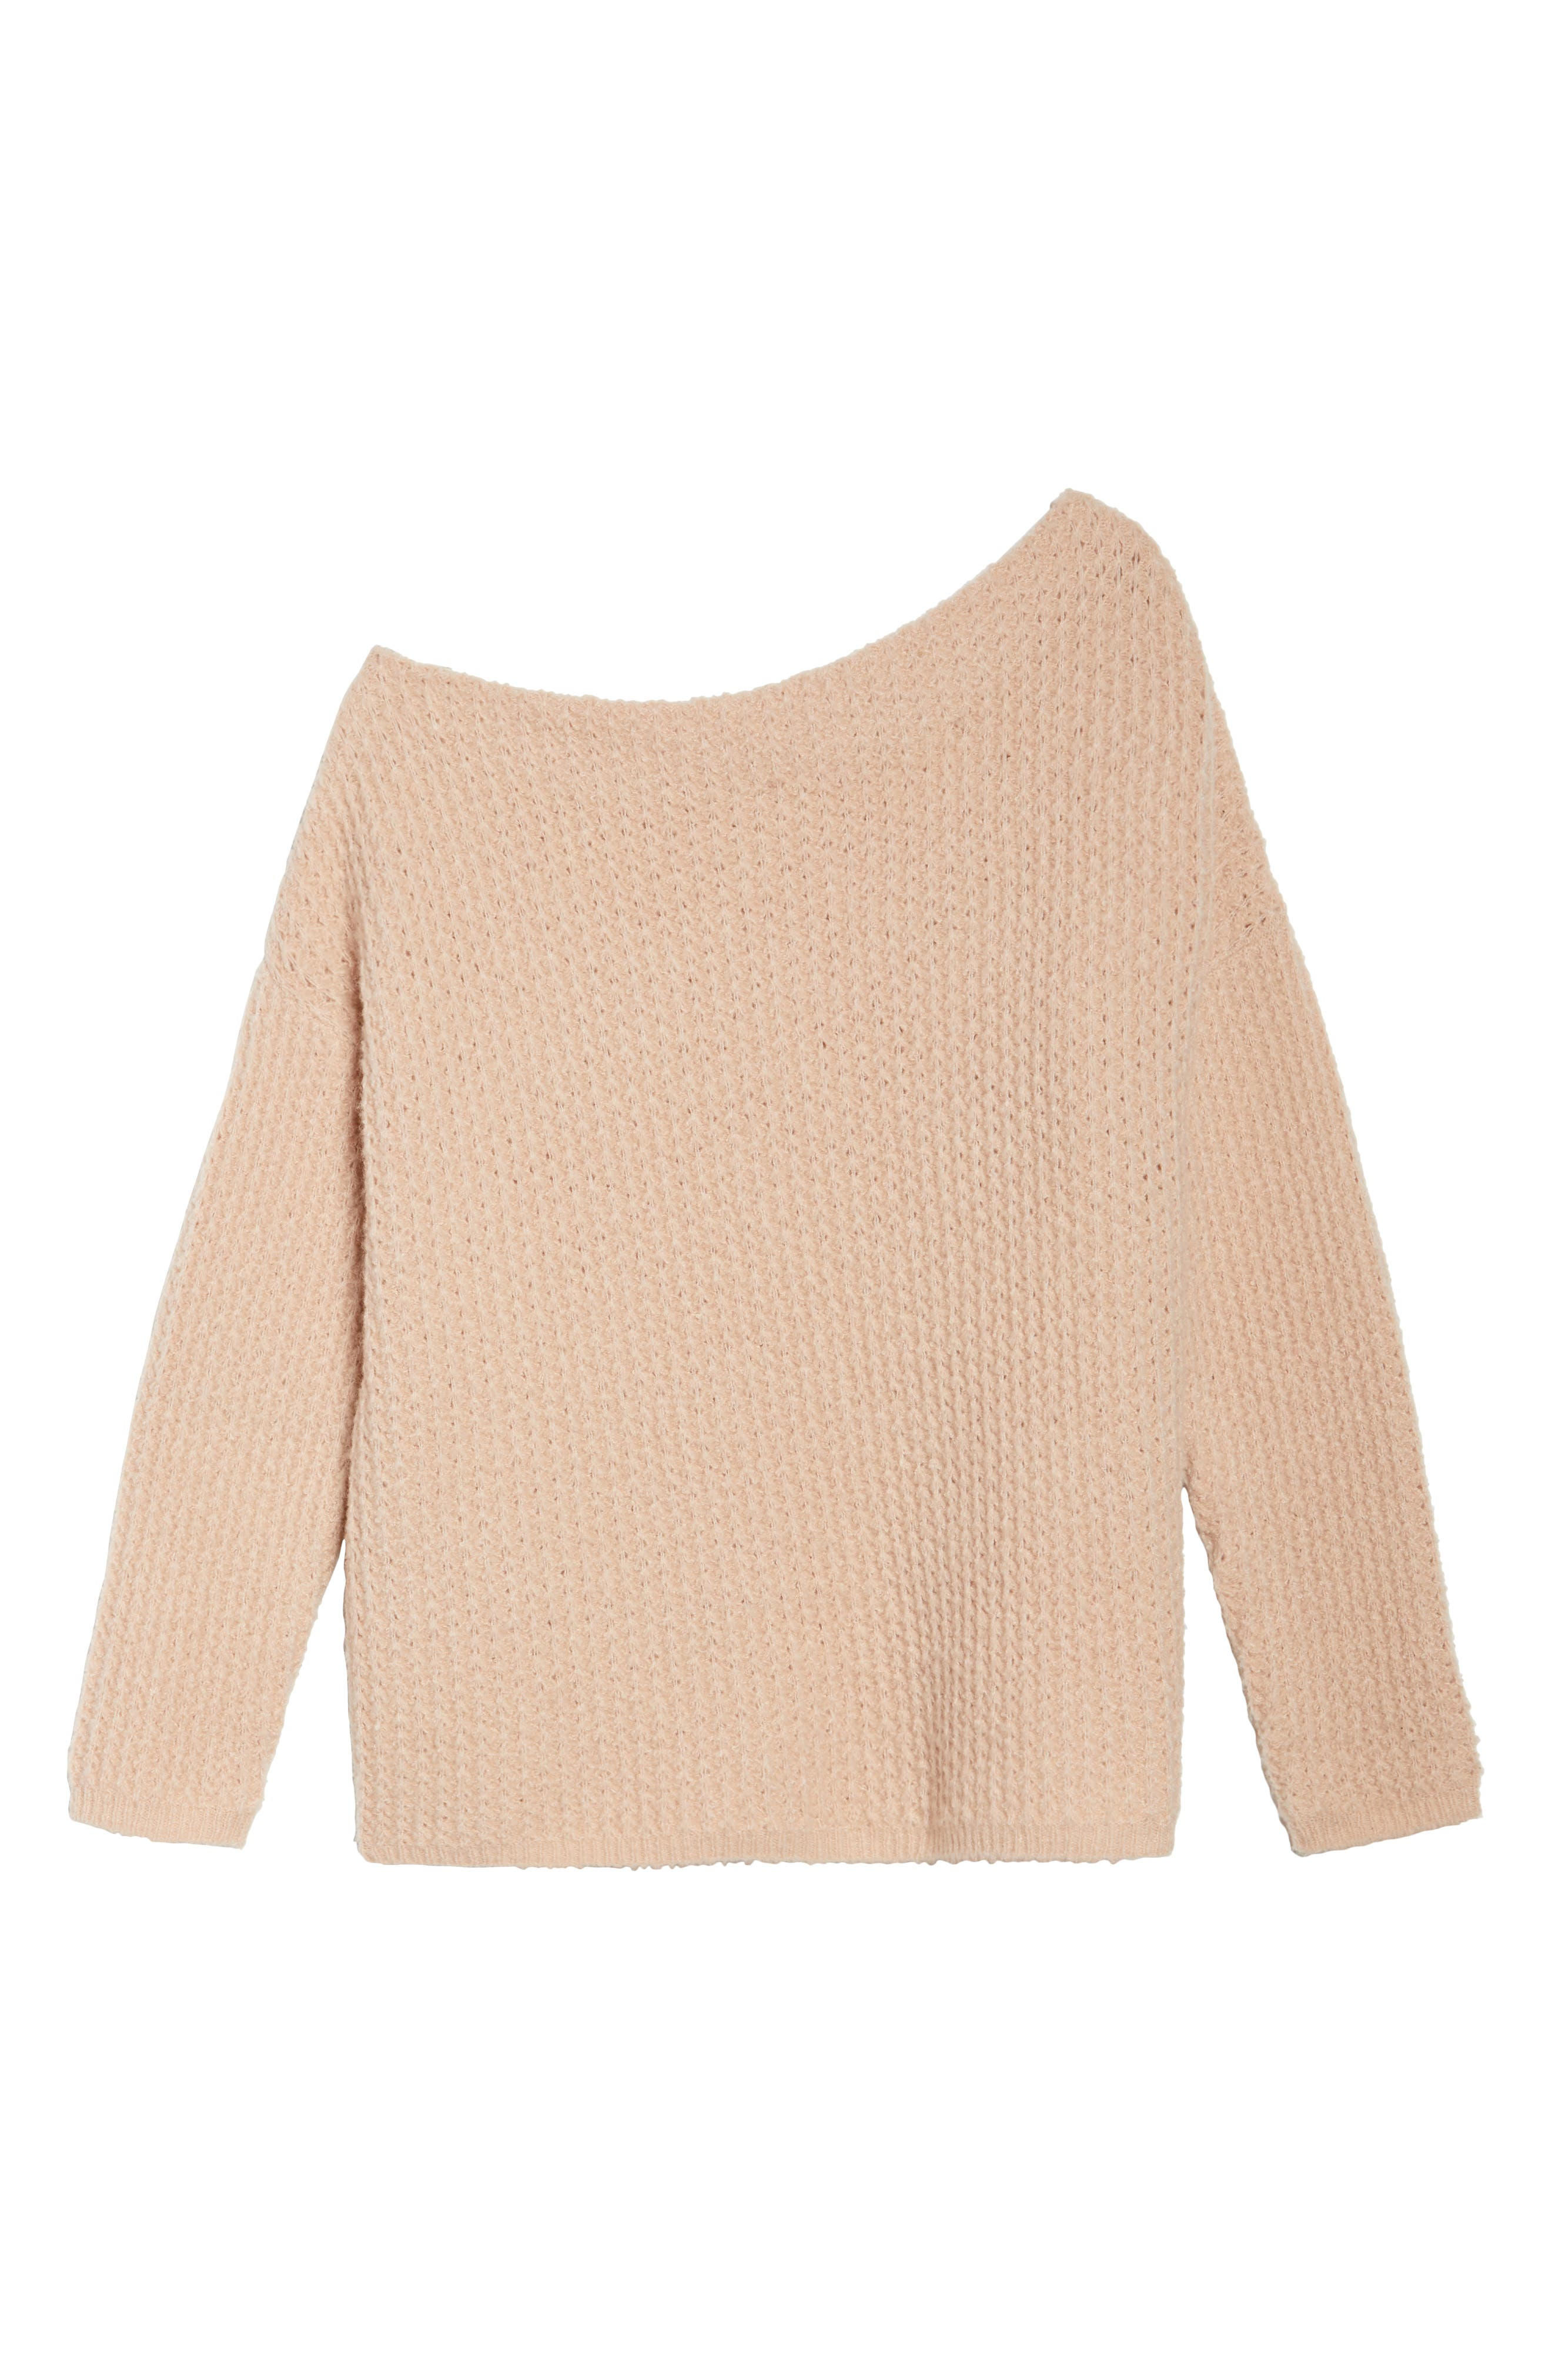 Off the Shoulder Sweater,                             Alternate thumbnail 7, color,                             Blossom